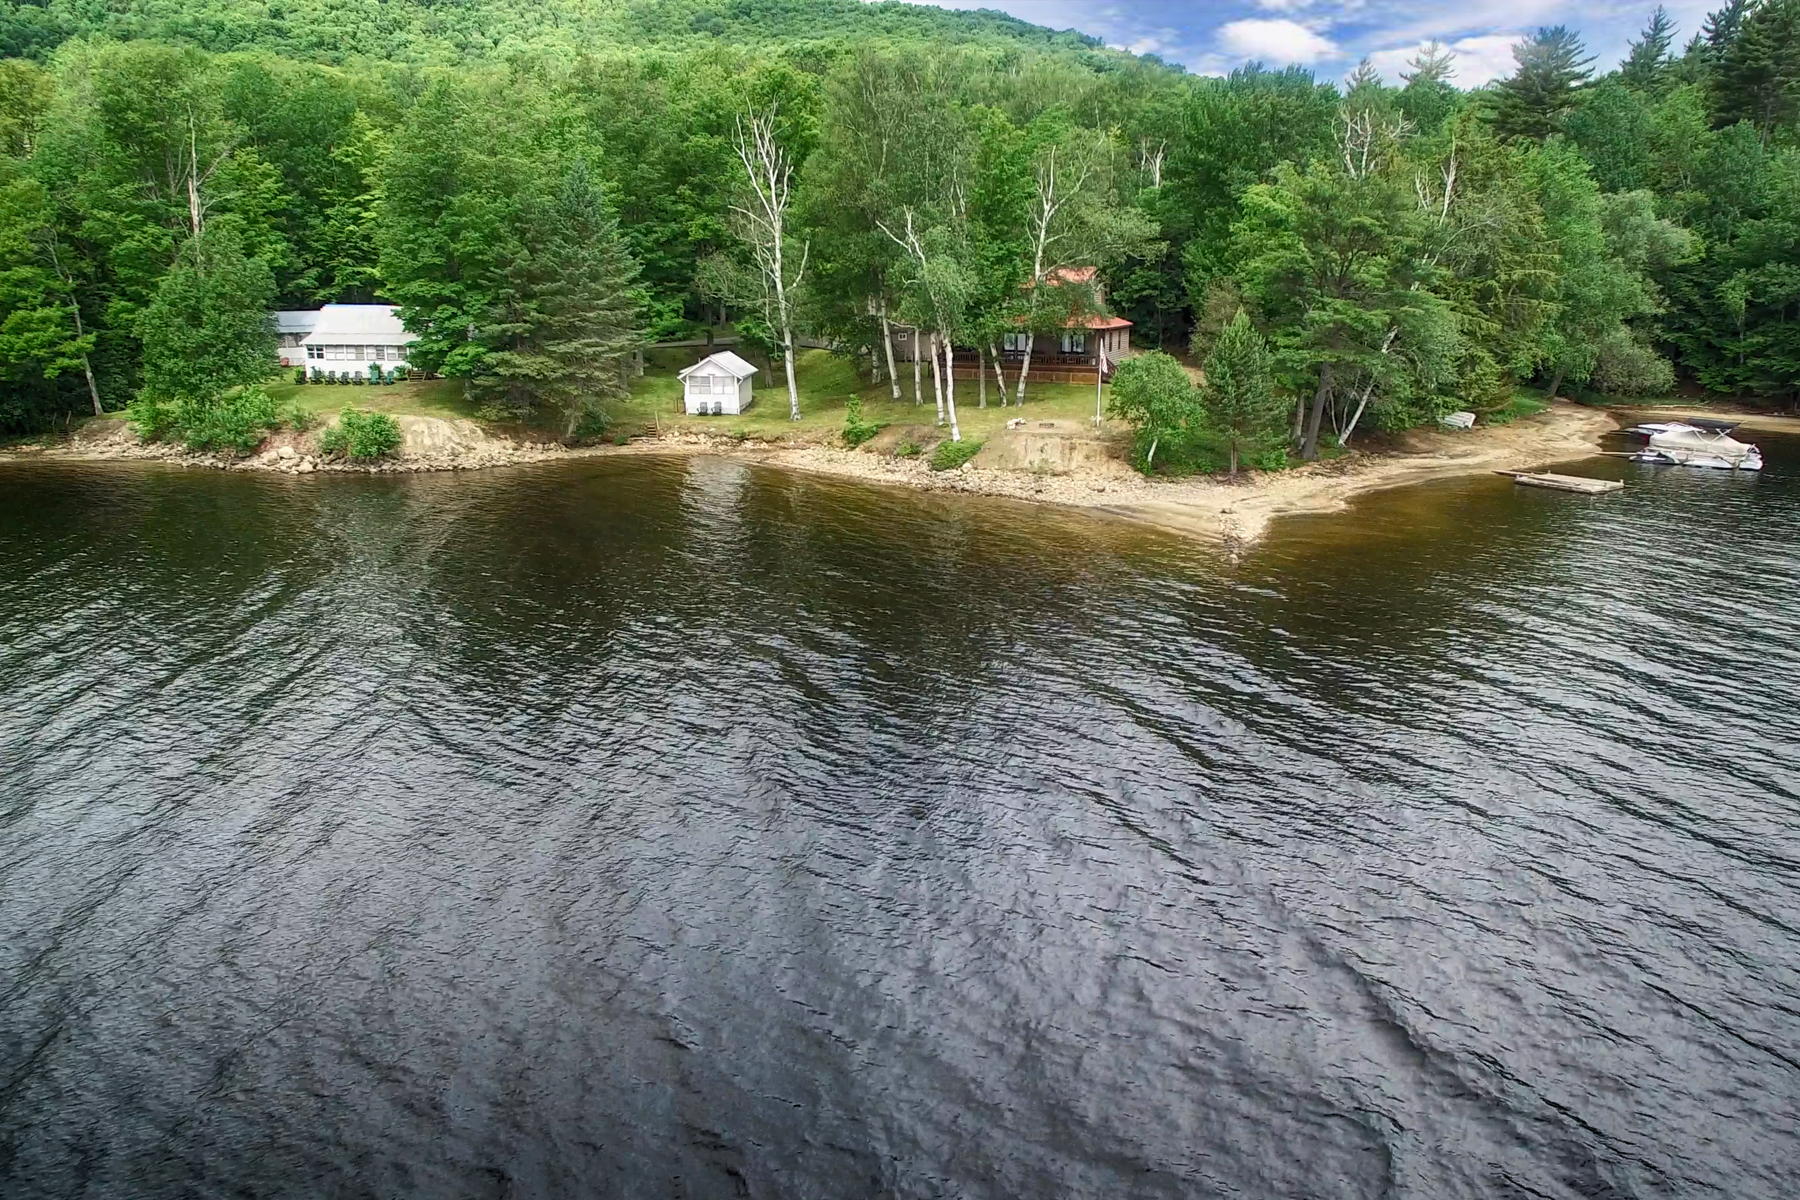 Single Family Home for Sale at Sandy Beach on Indian Lake 5486 Nys Rte.30 Indian Lake, New York 12842 United States